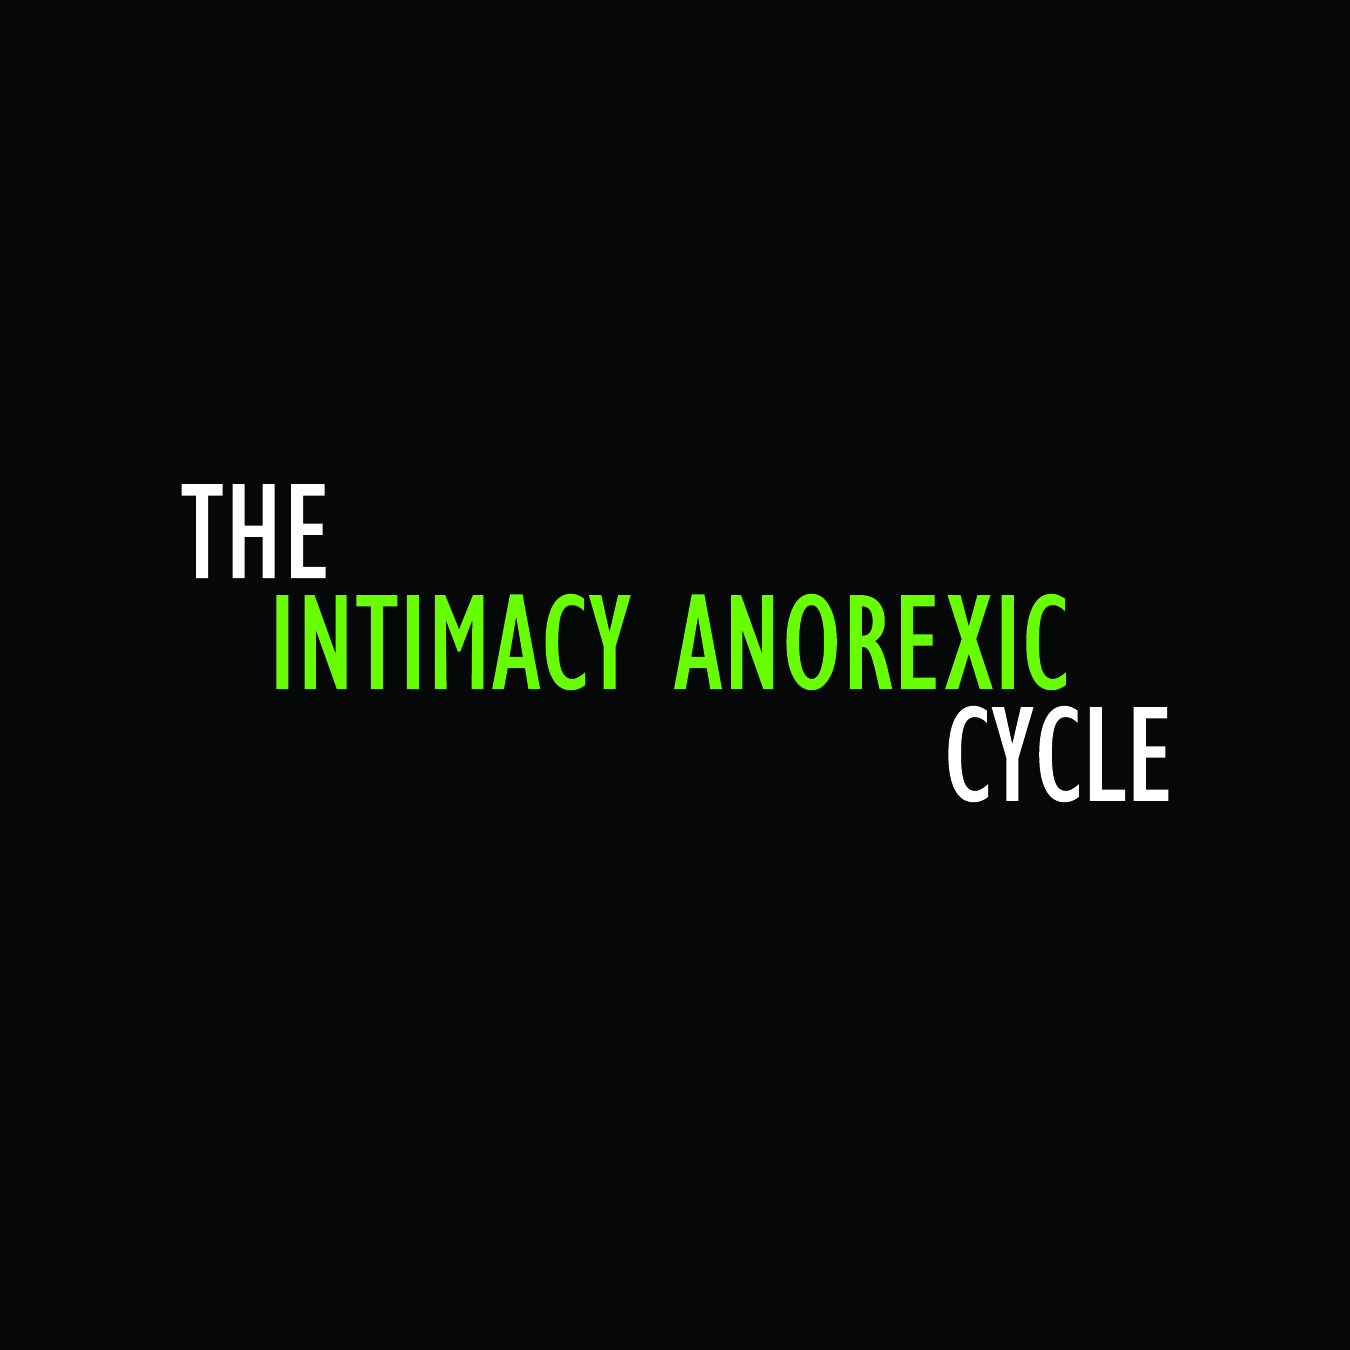 The Intimacy Anorexic Cycle